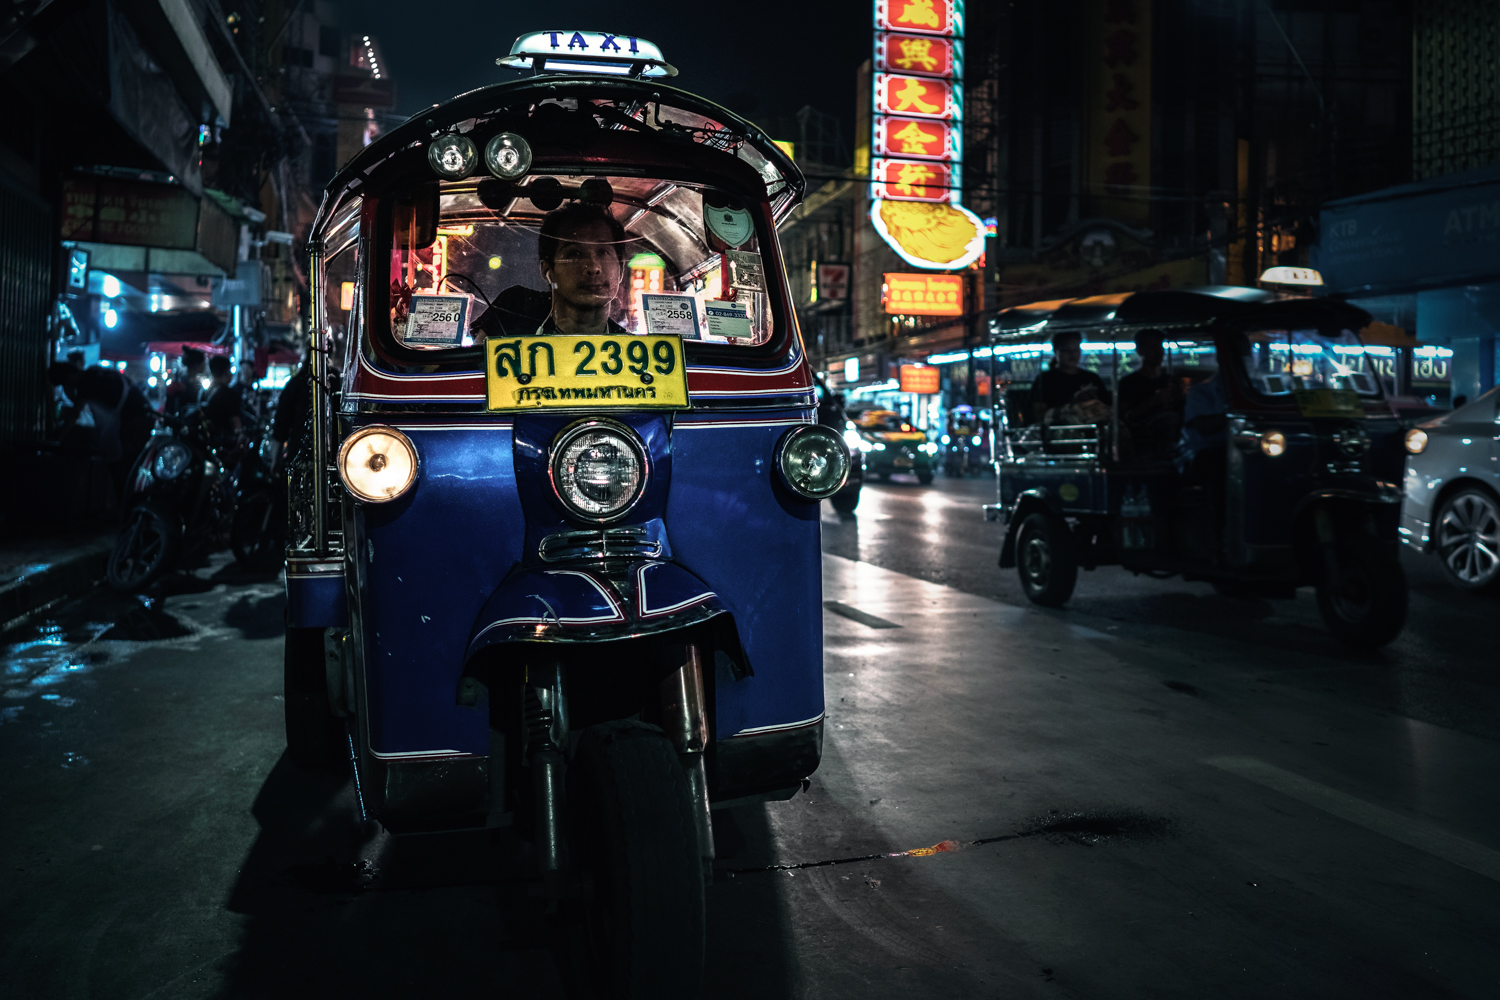 A tuk tuk driver waits for passengers in Chinatown.